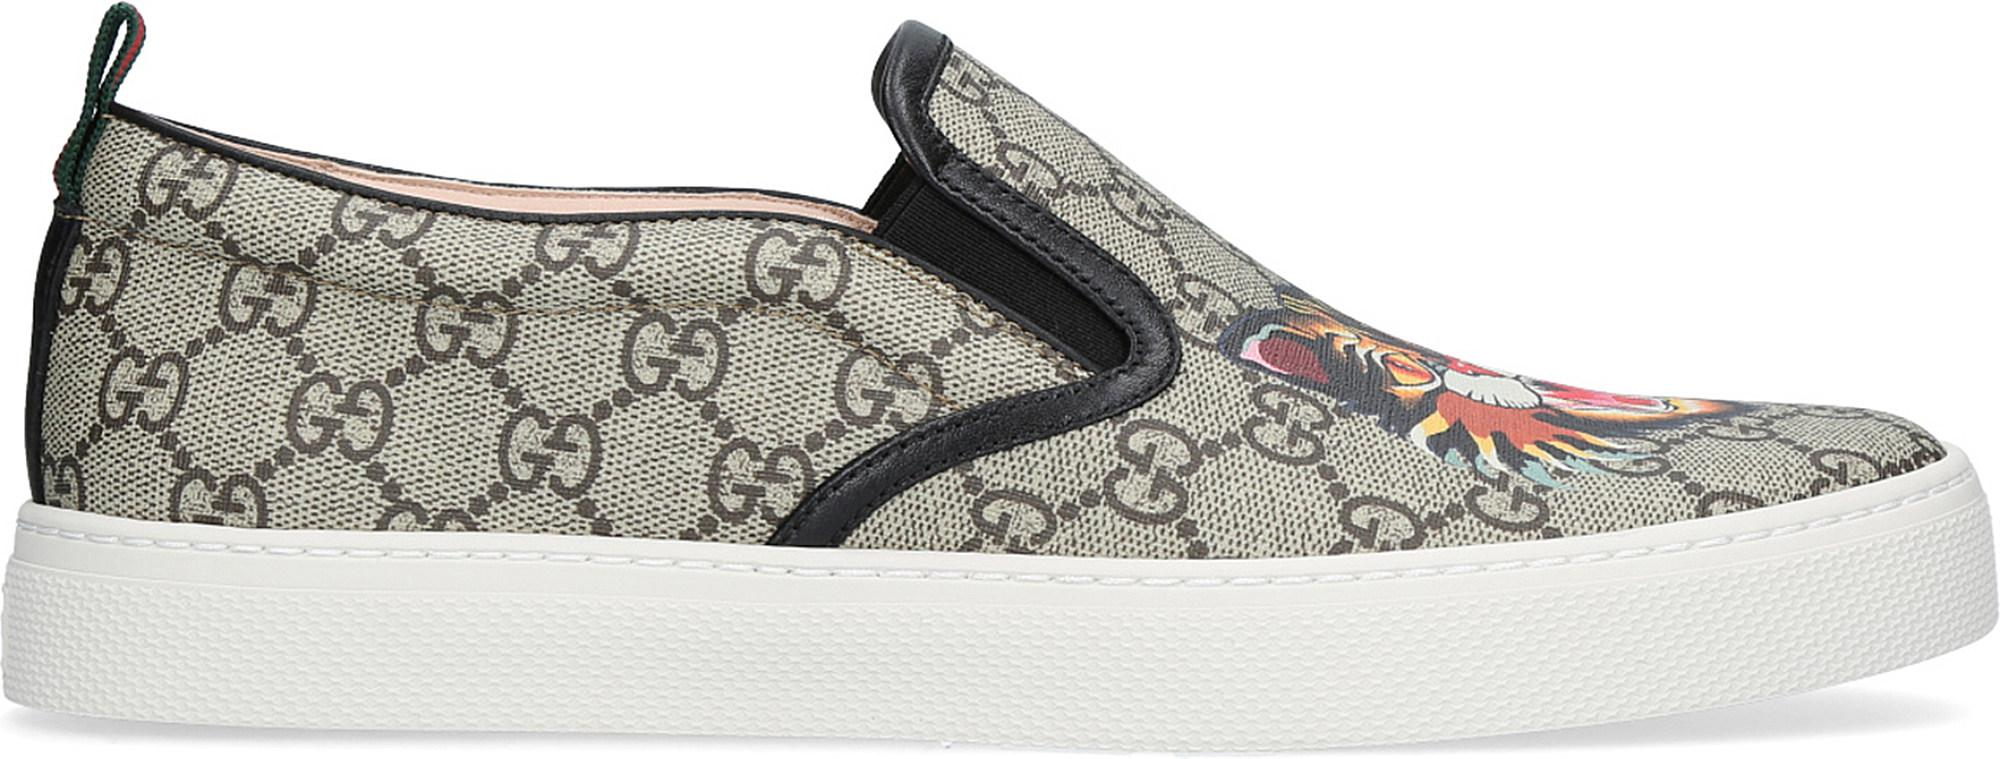 ee3faa37a Gucci Dublin Tiger-print Gg Canvas Skate Shoes in Brown for Men - Lyst